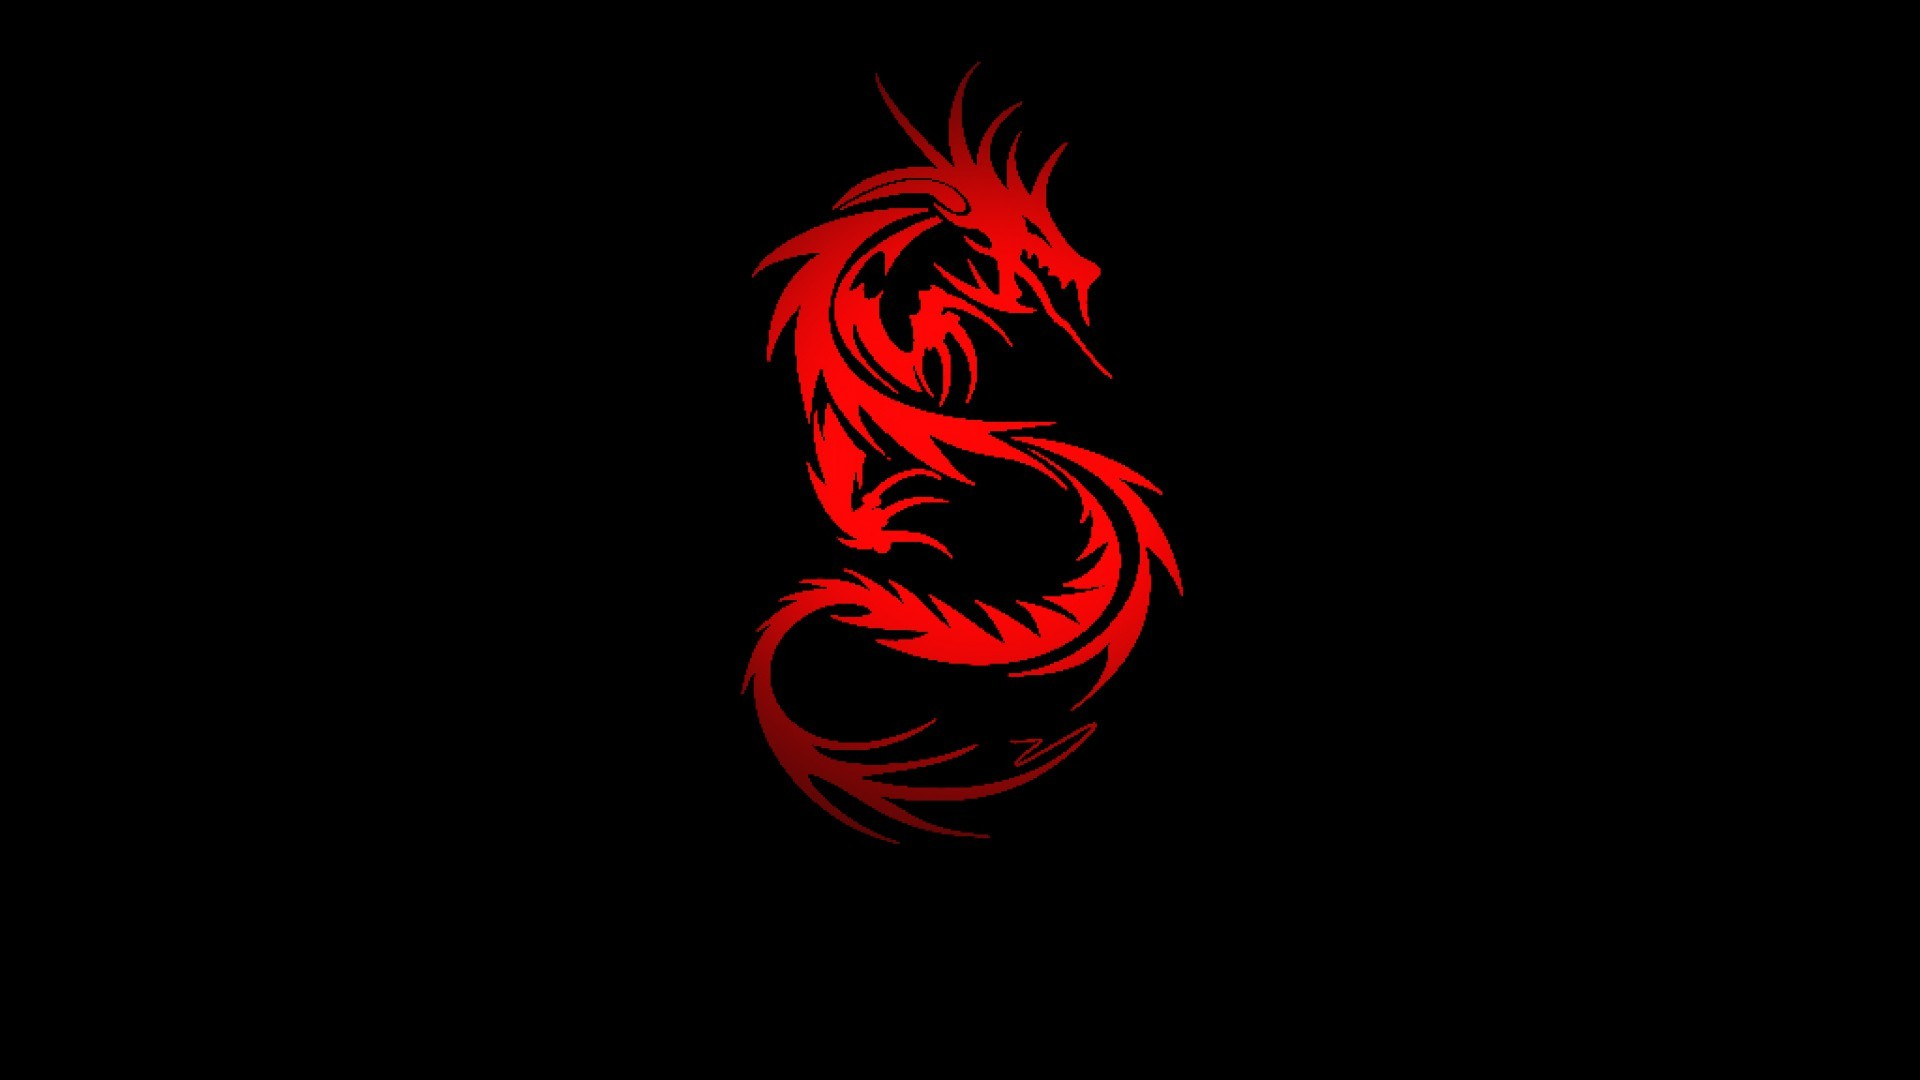 Red dragon wallpaper hd 65 images 1920x1080 red dragon wallpapers hd free 562608 voltagebd Gallery